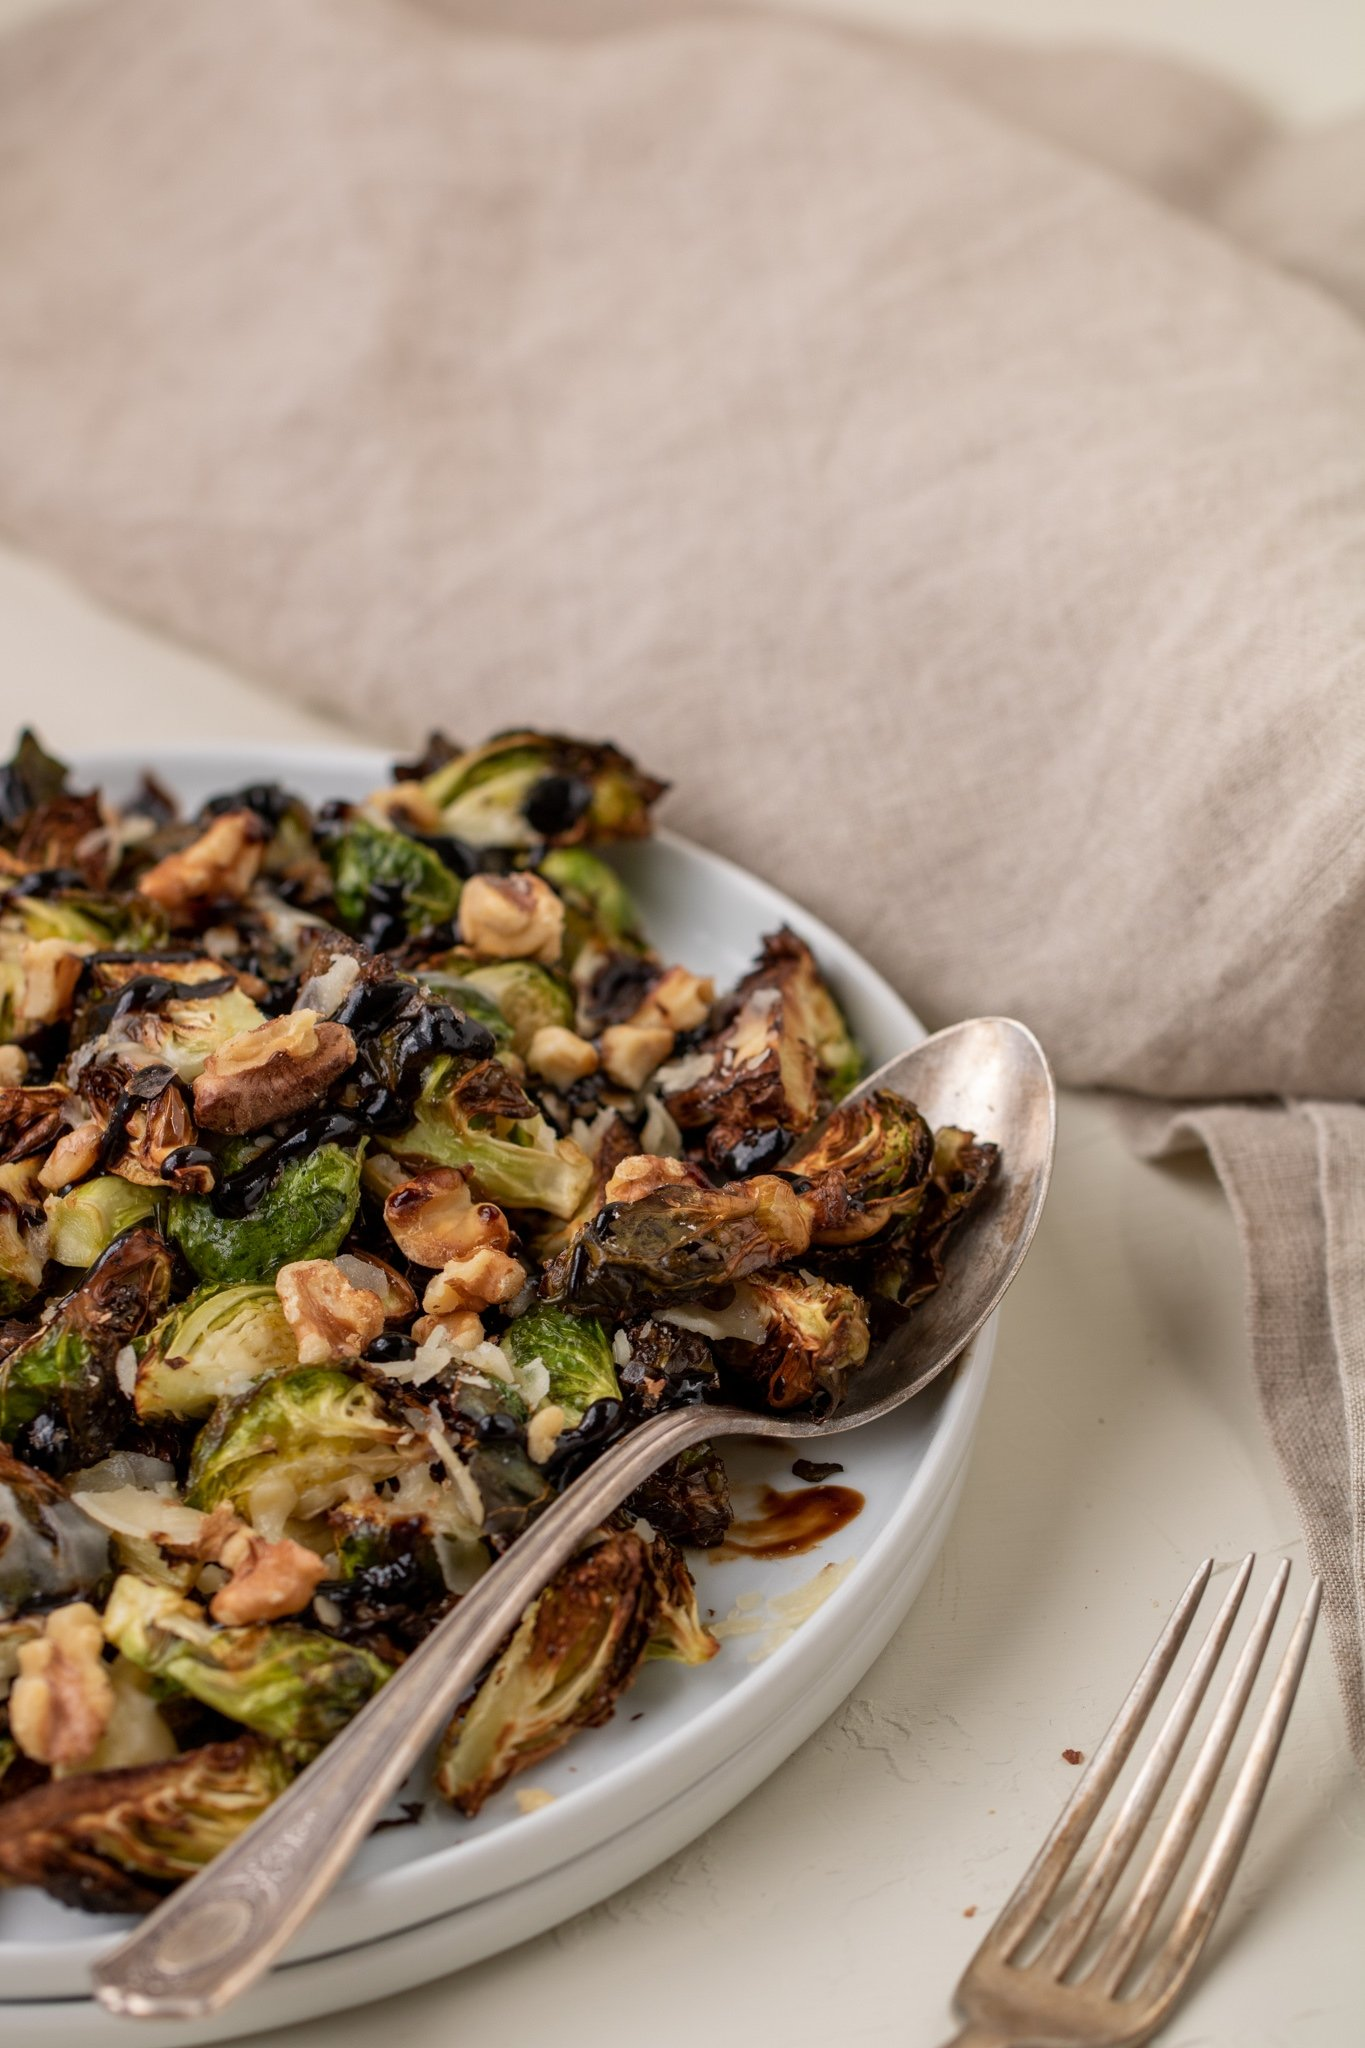 Plates stacked with brussel sprouts on top with balsamic glaze